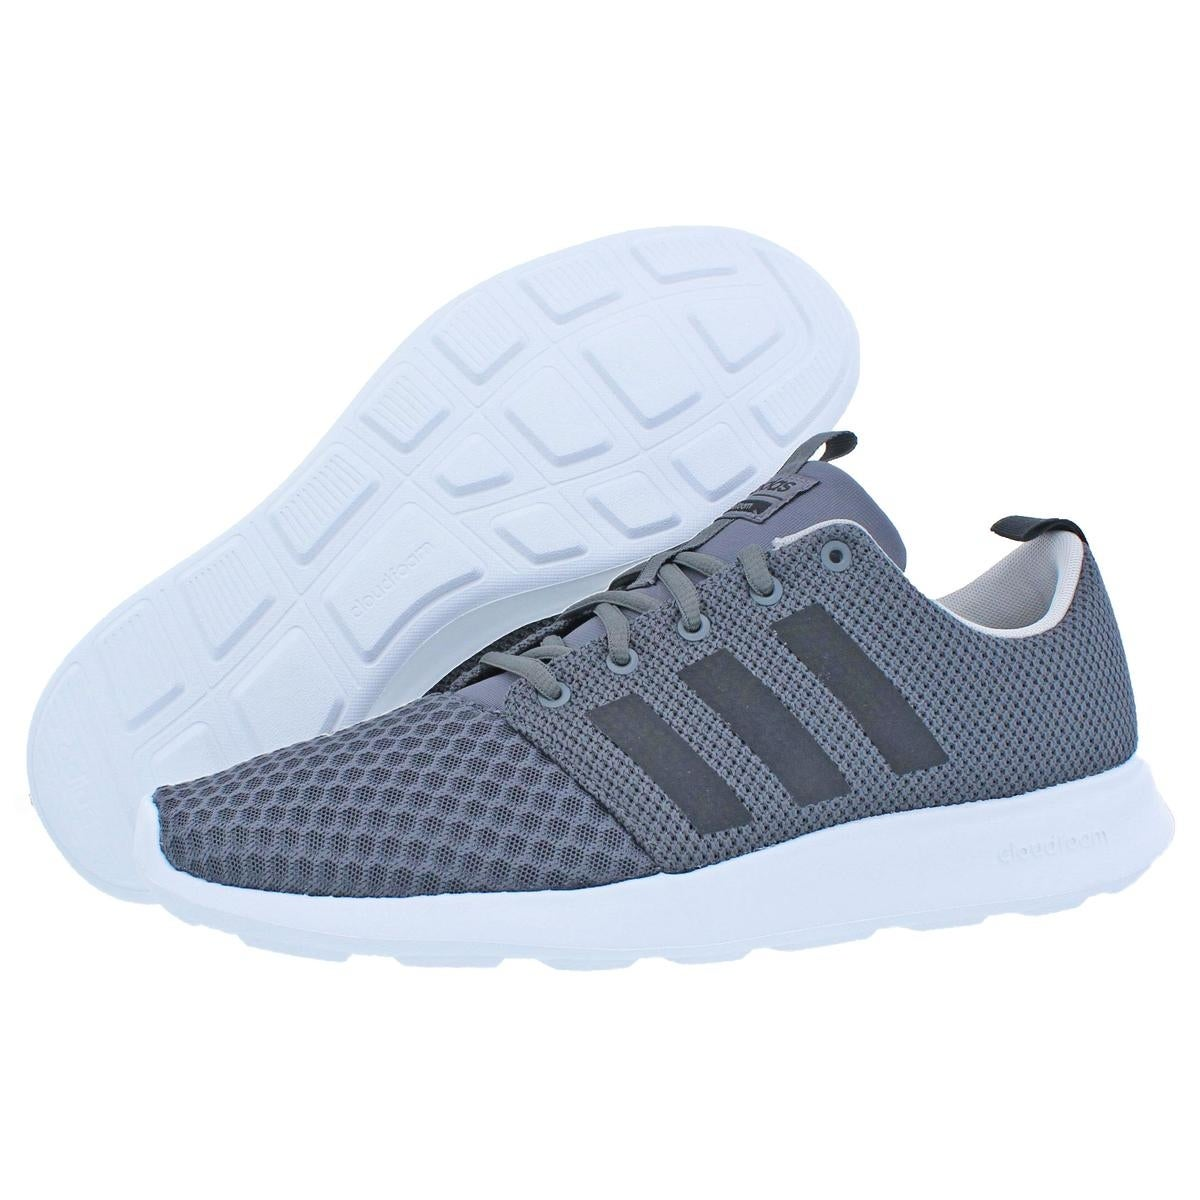 2662d13424b5fc Shop adidas NEO Mens Cloudfoam Swift Racer Running Shoes Lightweight  Athleisure - Free Shipping On Orders Over  45 - Overstock - 22680211